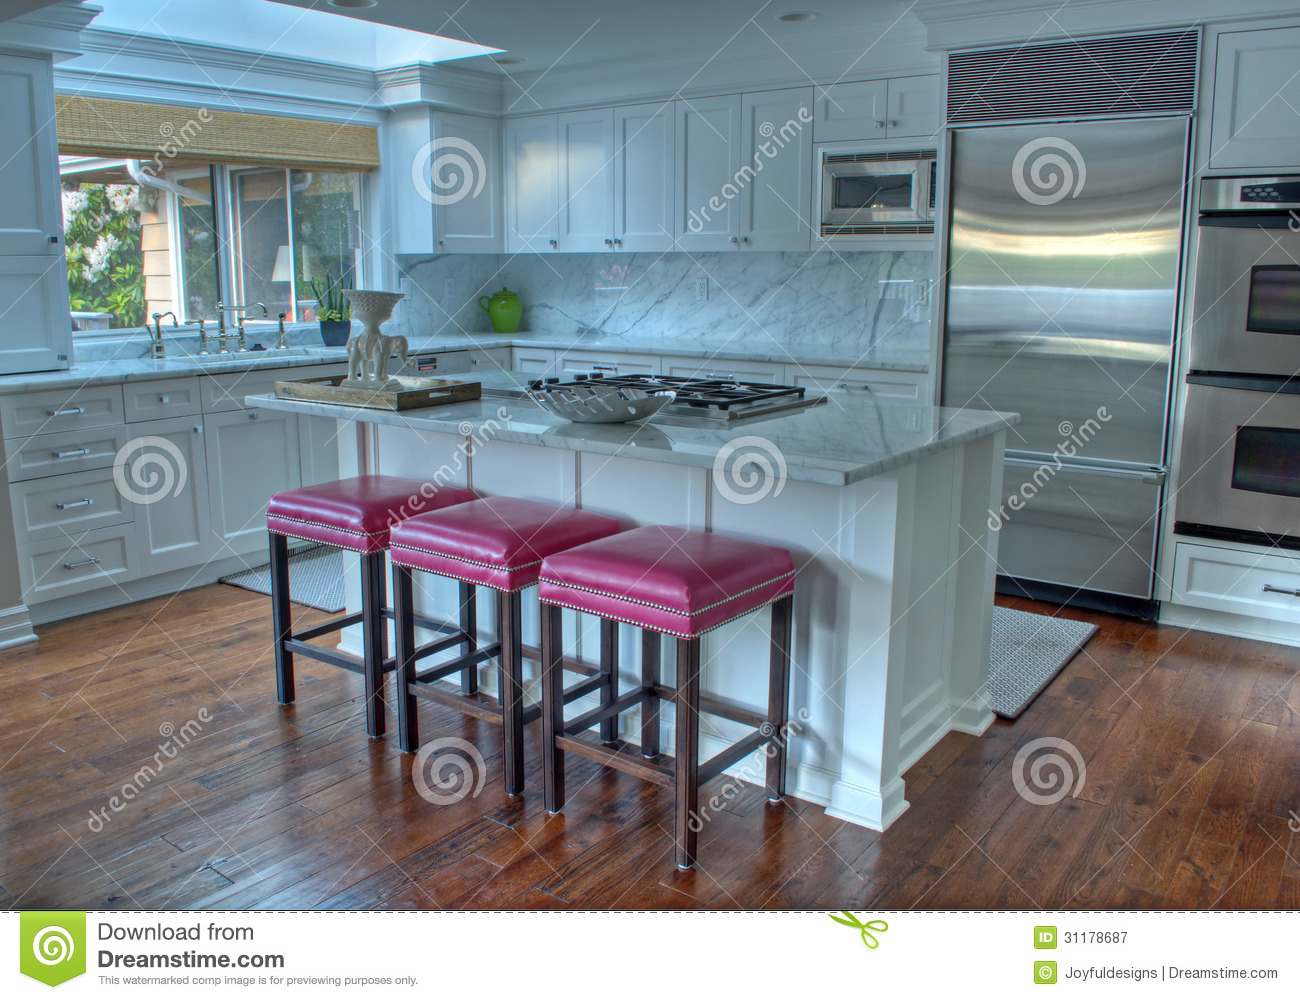 Hot Pink Kitchen Decor